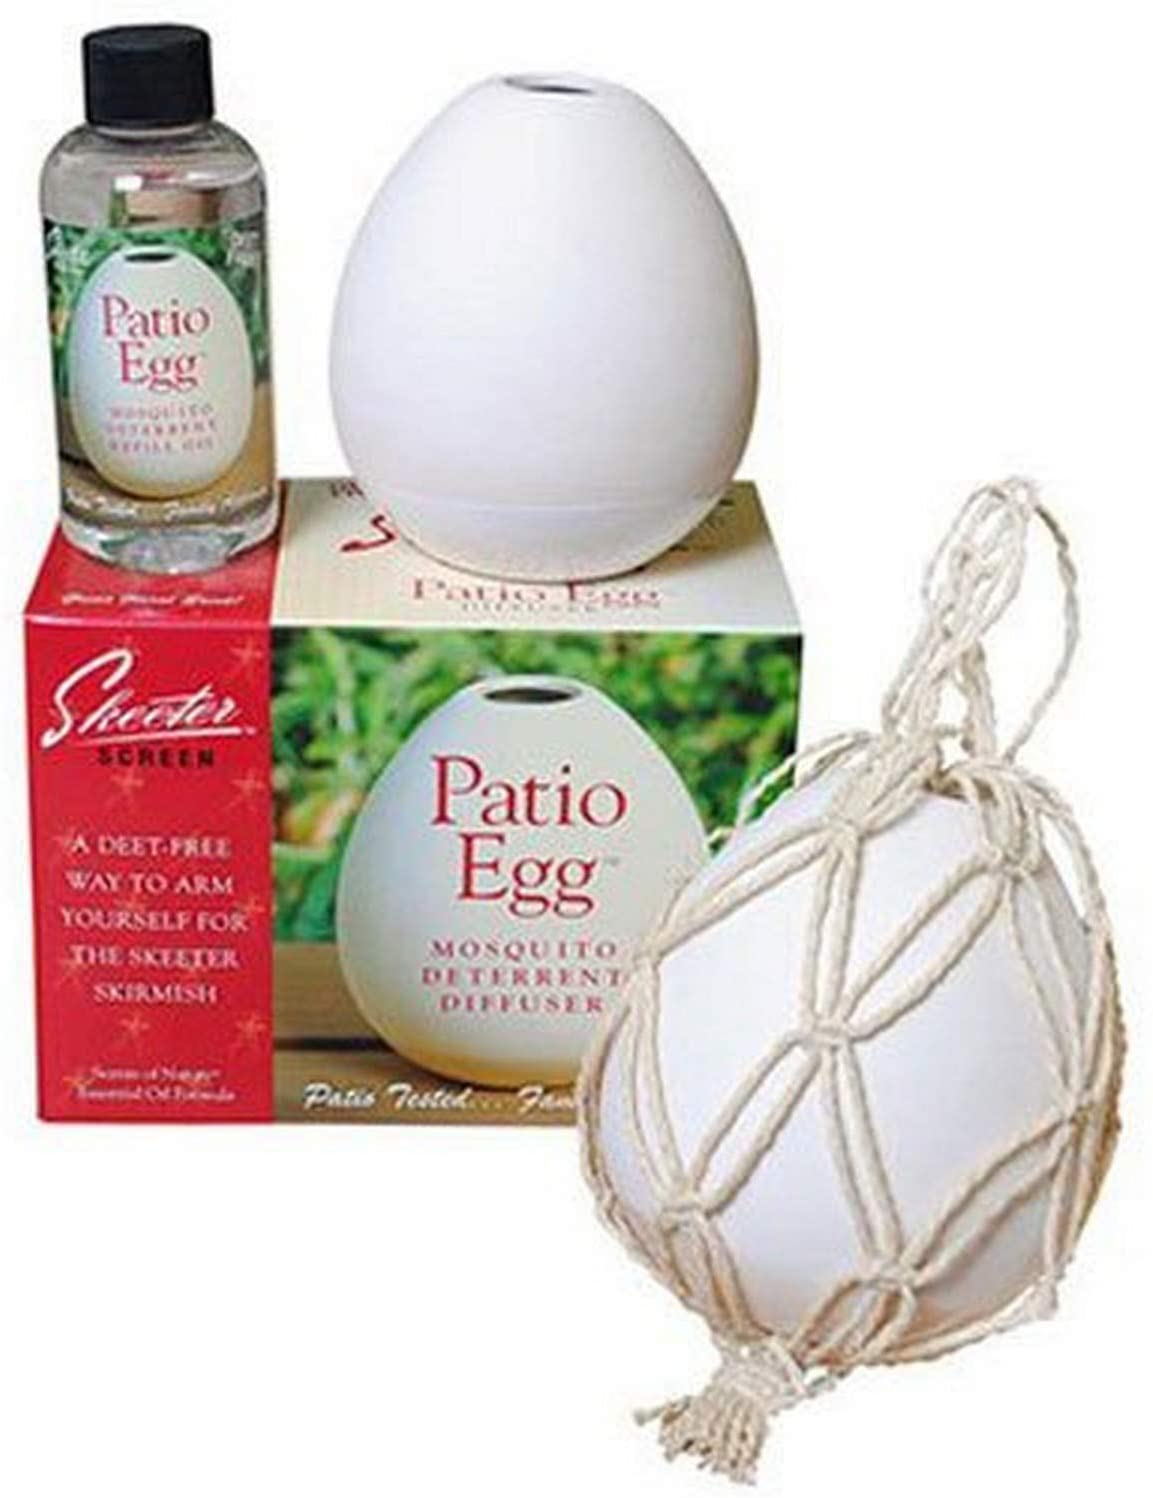 Best Flameless Citronella Candle: Skeeter Screen Patio Egg Diffuser